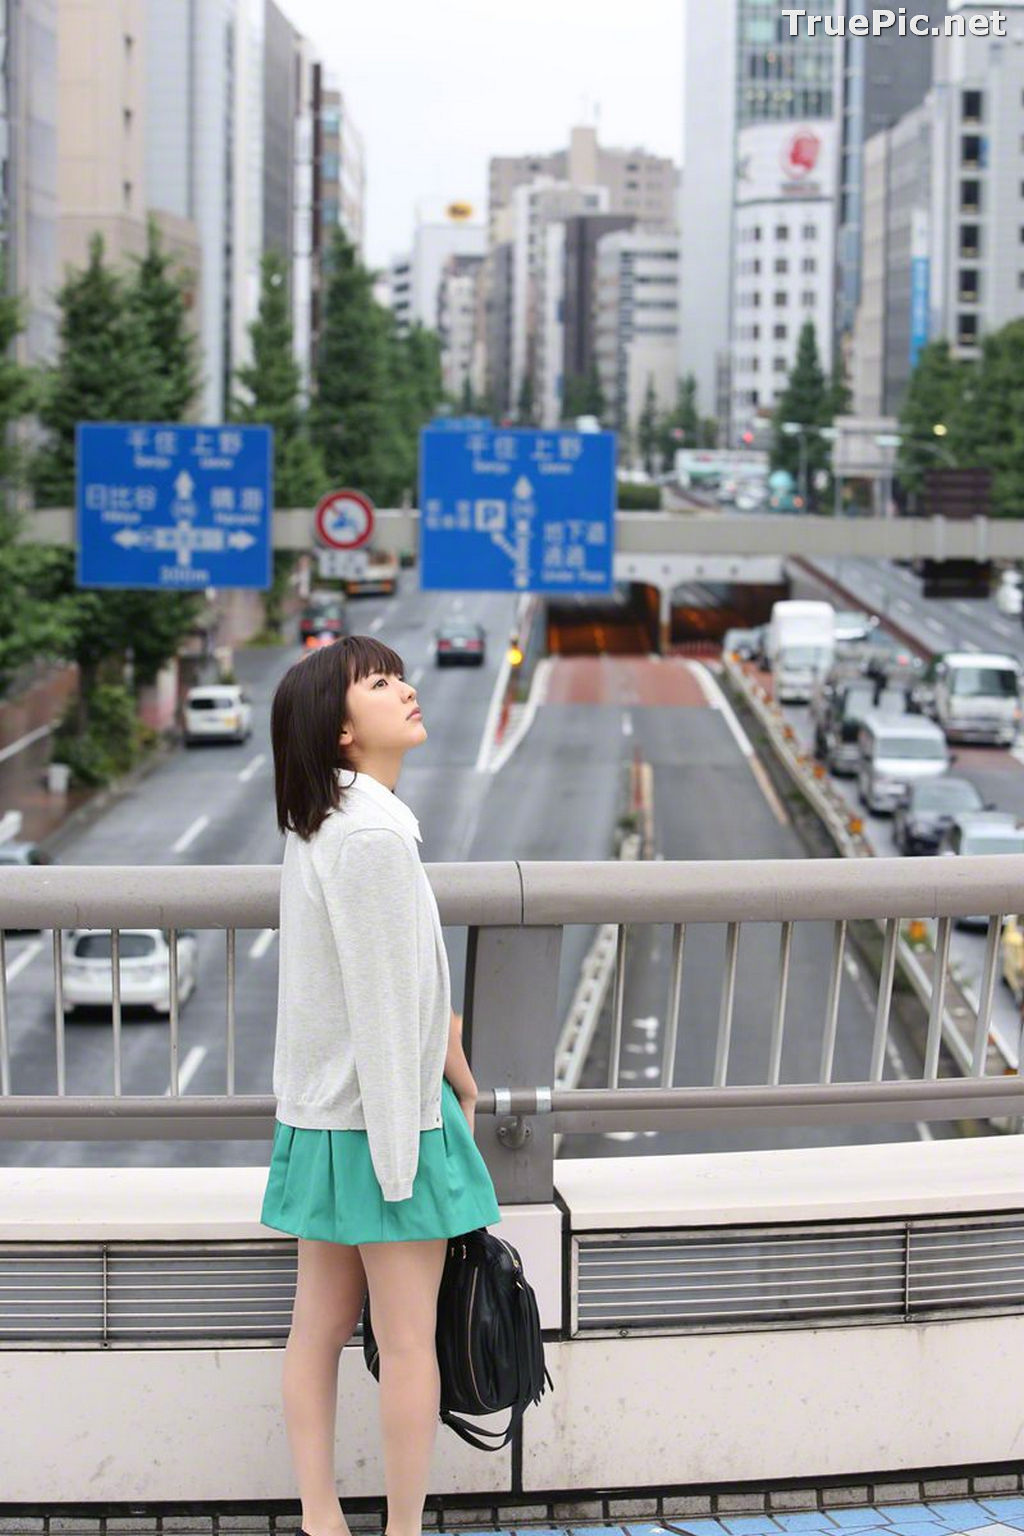 Image [WBGC Photograph] No.131 - Japanese Singer and Actress - Erina Mano - TruePic.net - Picture-8